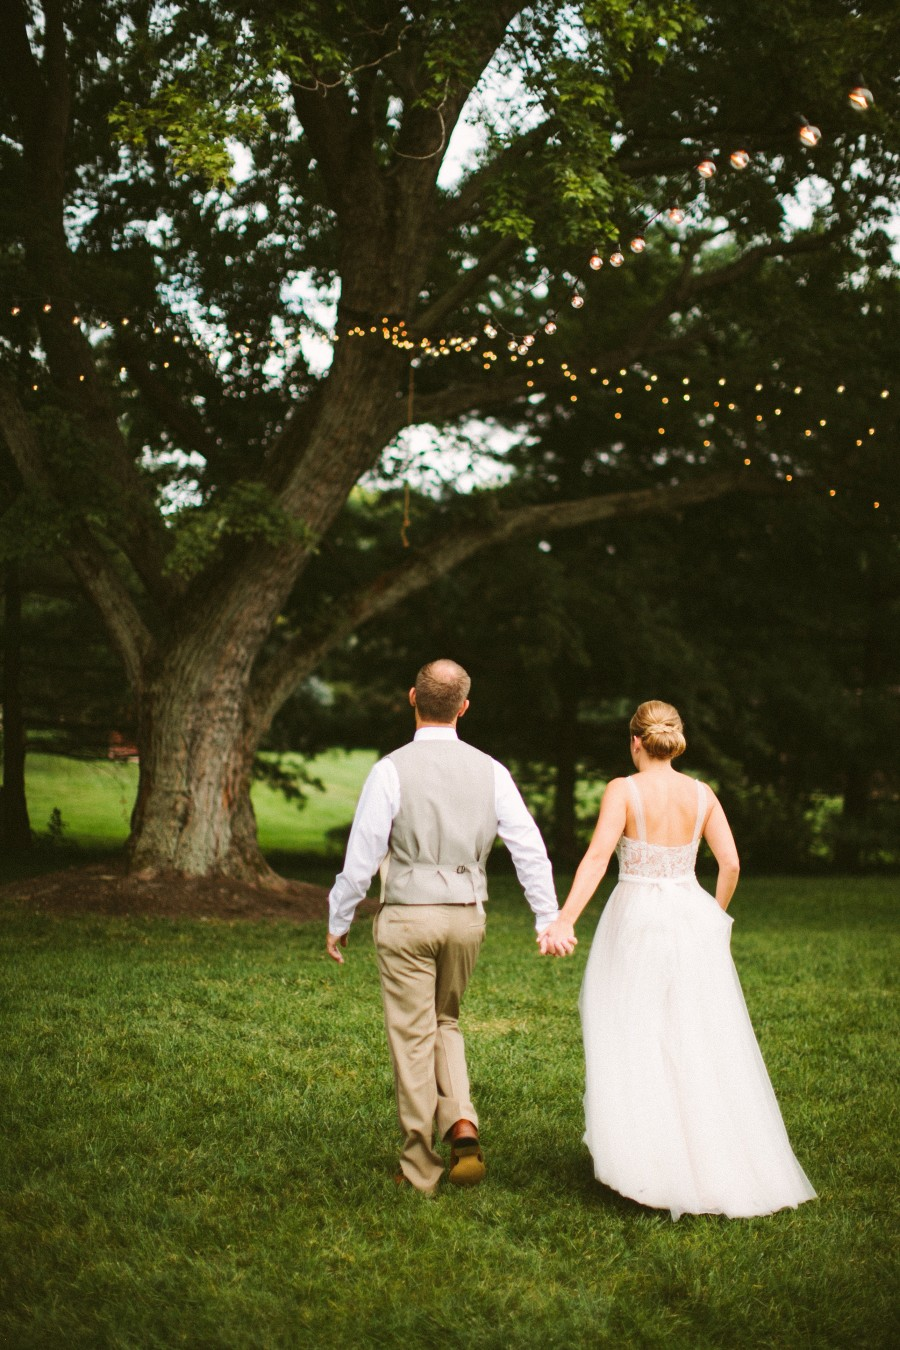 Simple Vintage Barn Wedding with Wildflowers and Antique Charm: Kelsie & Ryan